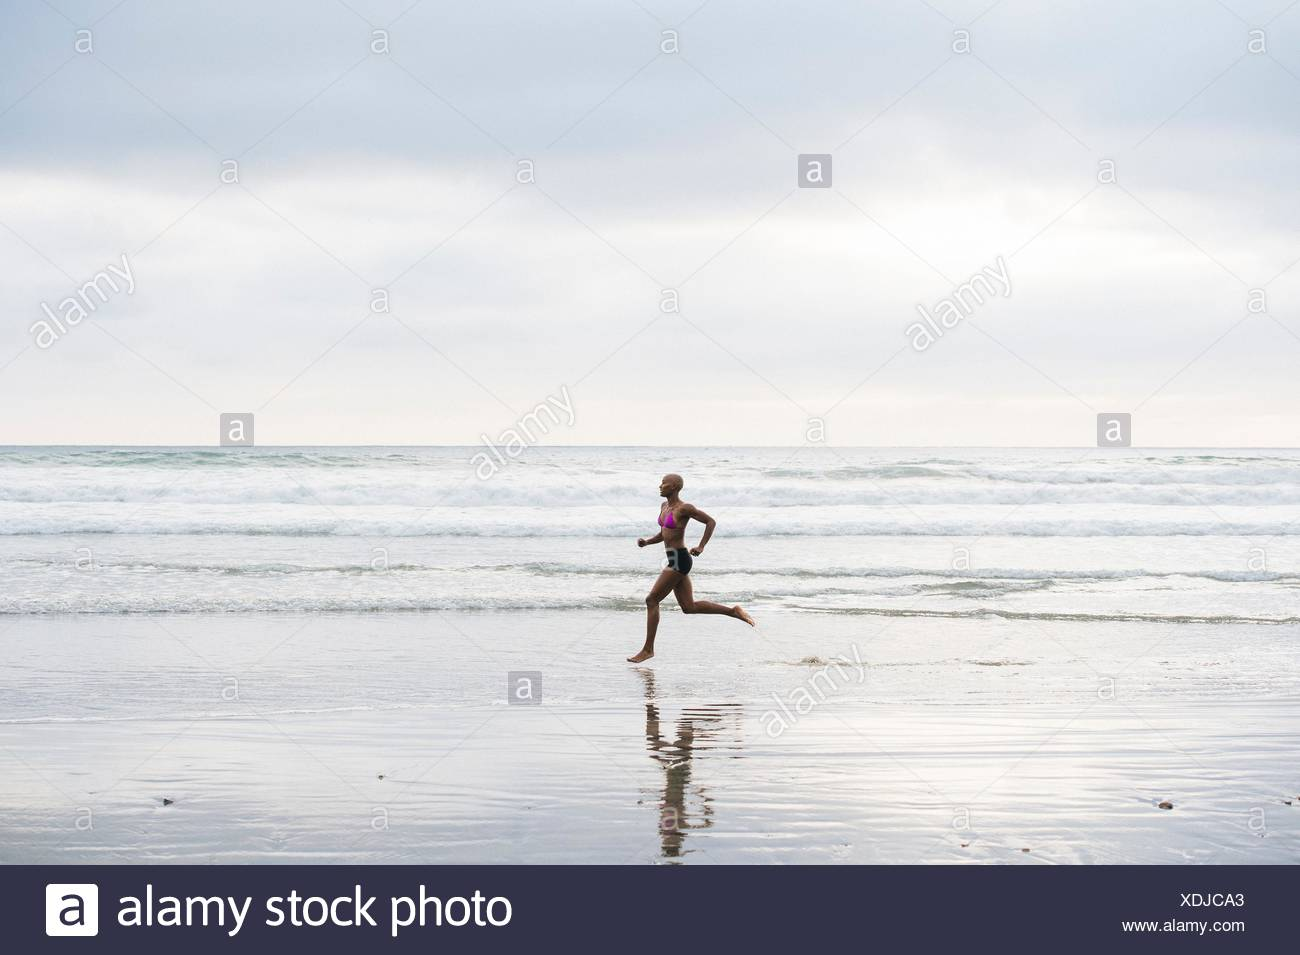 Woman in bikini jogging on beach - Stock Image